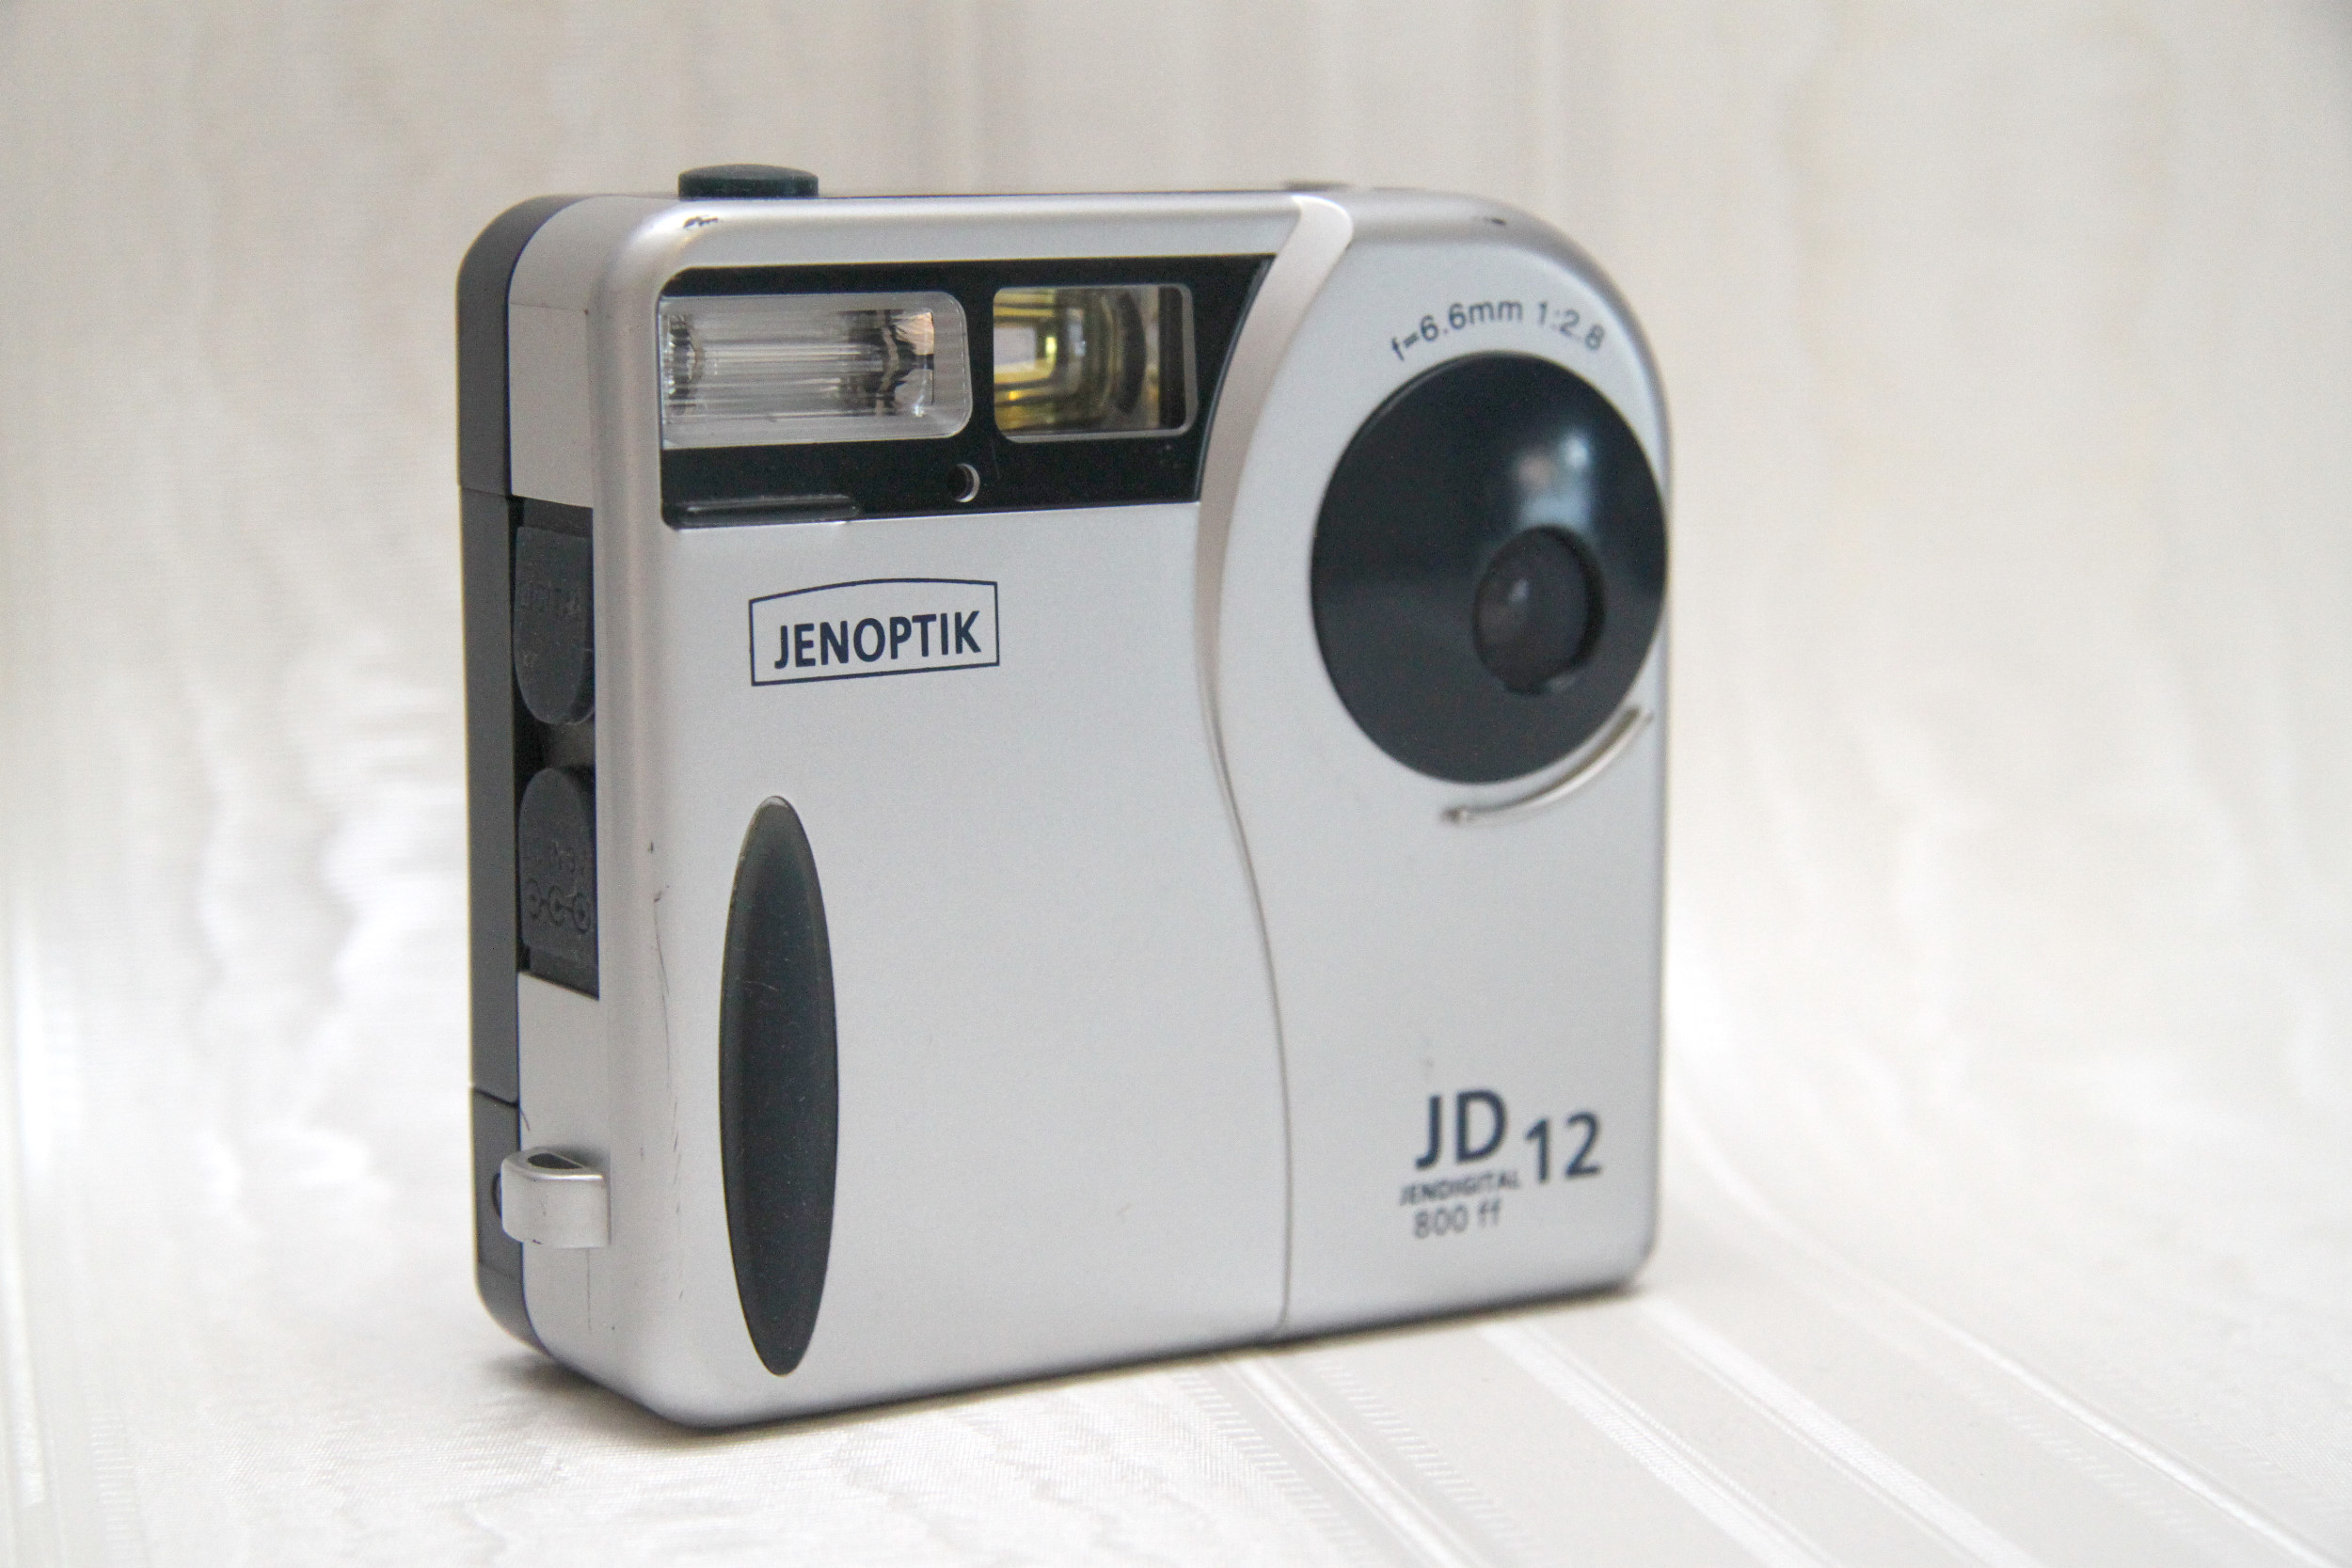 JENOPTIK 800I DIGITAL CAMERA DRIVER